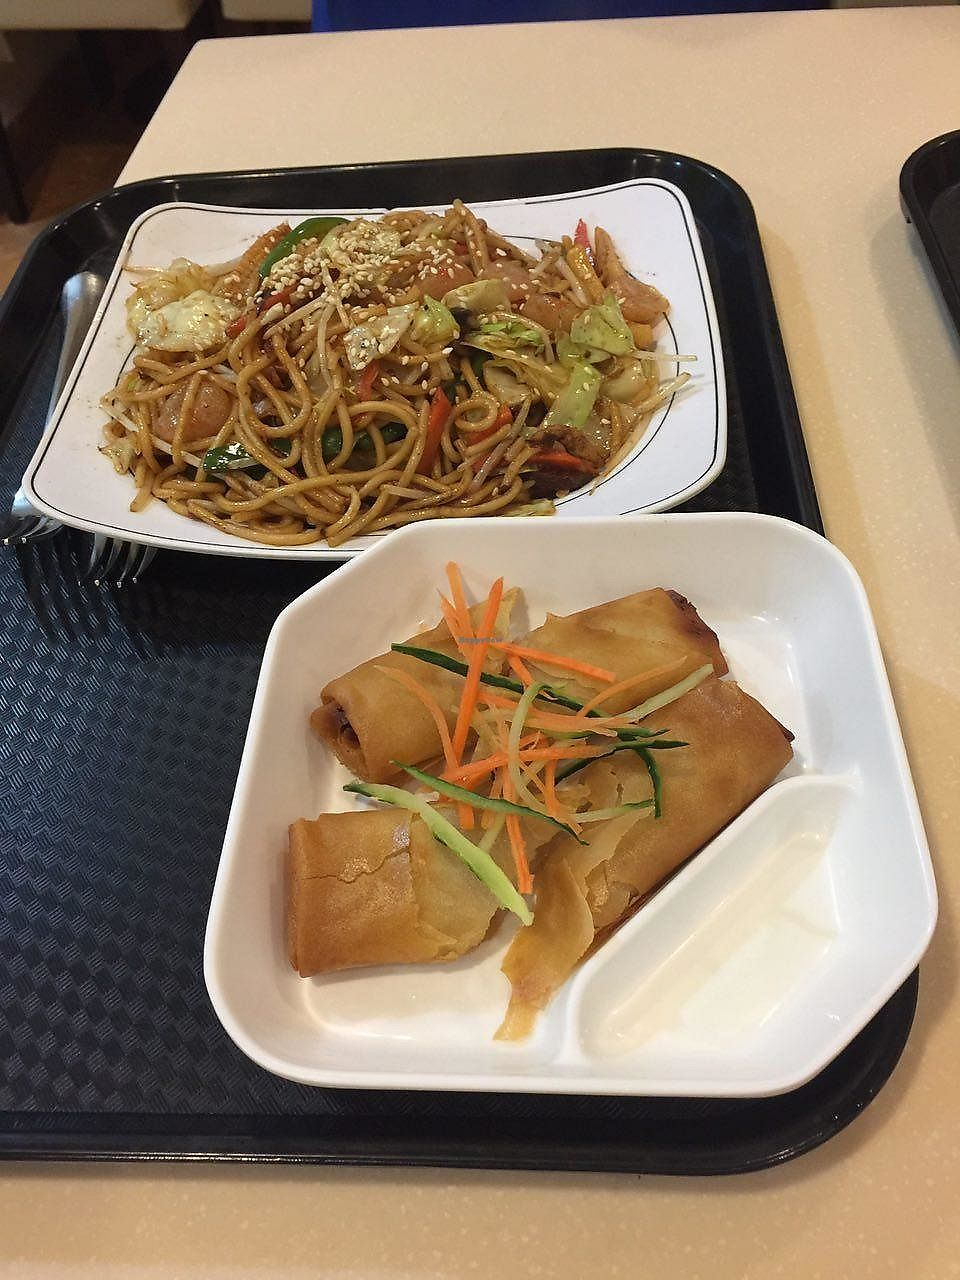 """Photo of Loving Hut - Wan Chai  by <a href=""""/members/profile/FlokiTheCat"""">FlokiTheCat</a> <br/>Spring rolls and fried noodles with XO sauce <br/> June 29, 2017  - <a href='/contact/abuse/image/19570/274645'>Report</a>"""